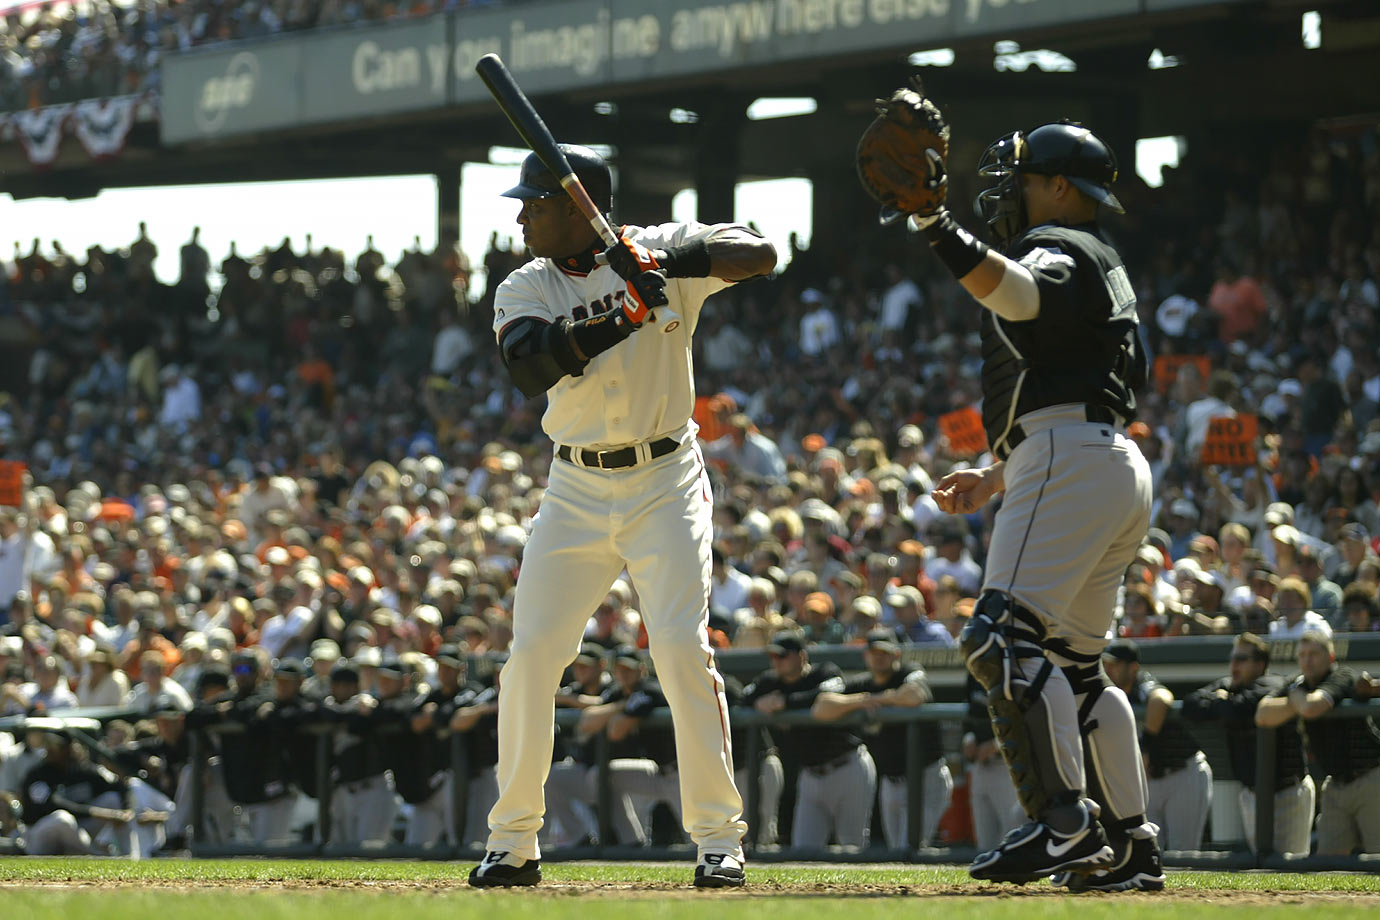 """Given the records that Barry Bonds has set in baseball it might not be surprising that according to our analysis he holds the best sports record. What might be surprising is that this record is for 688 intentional walks during his career, while his single season record of 73 home runs is the lowest ranked record in our analysis."""